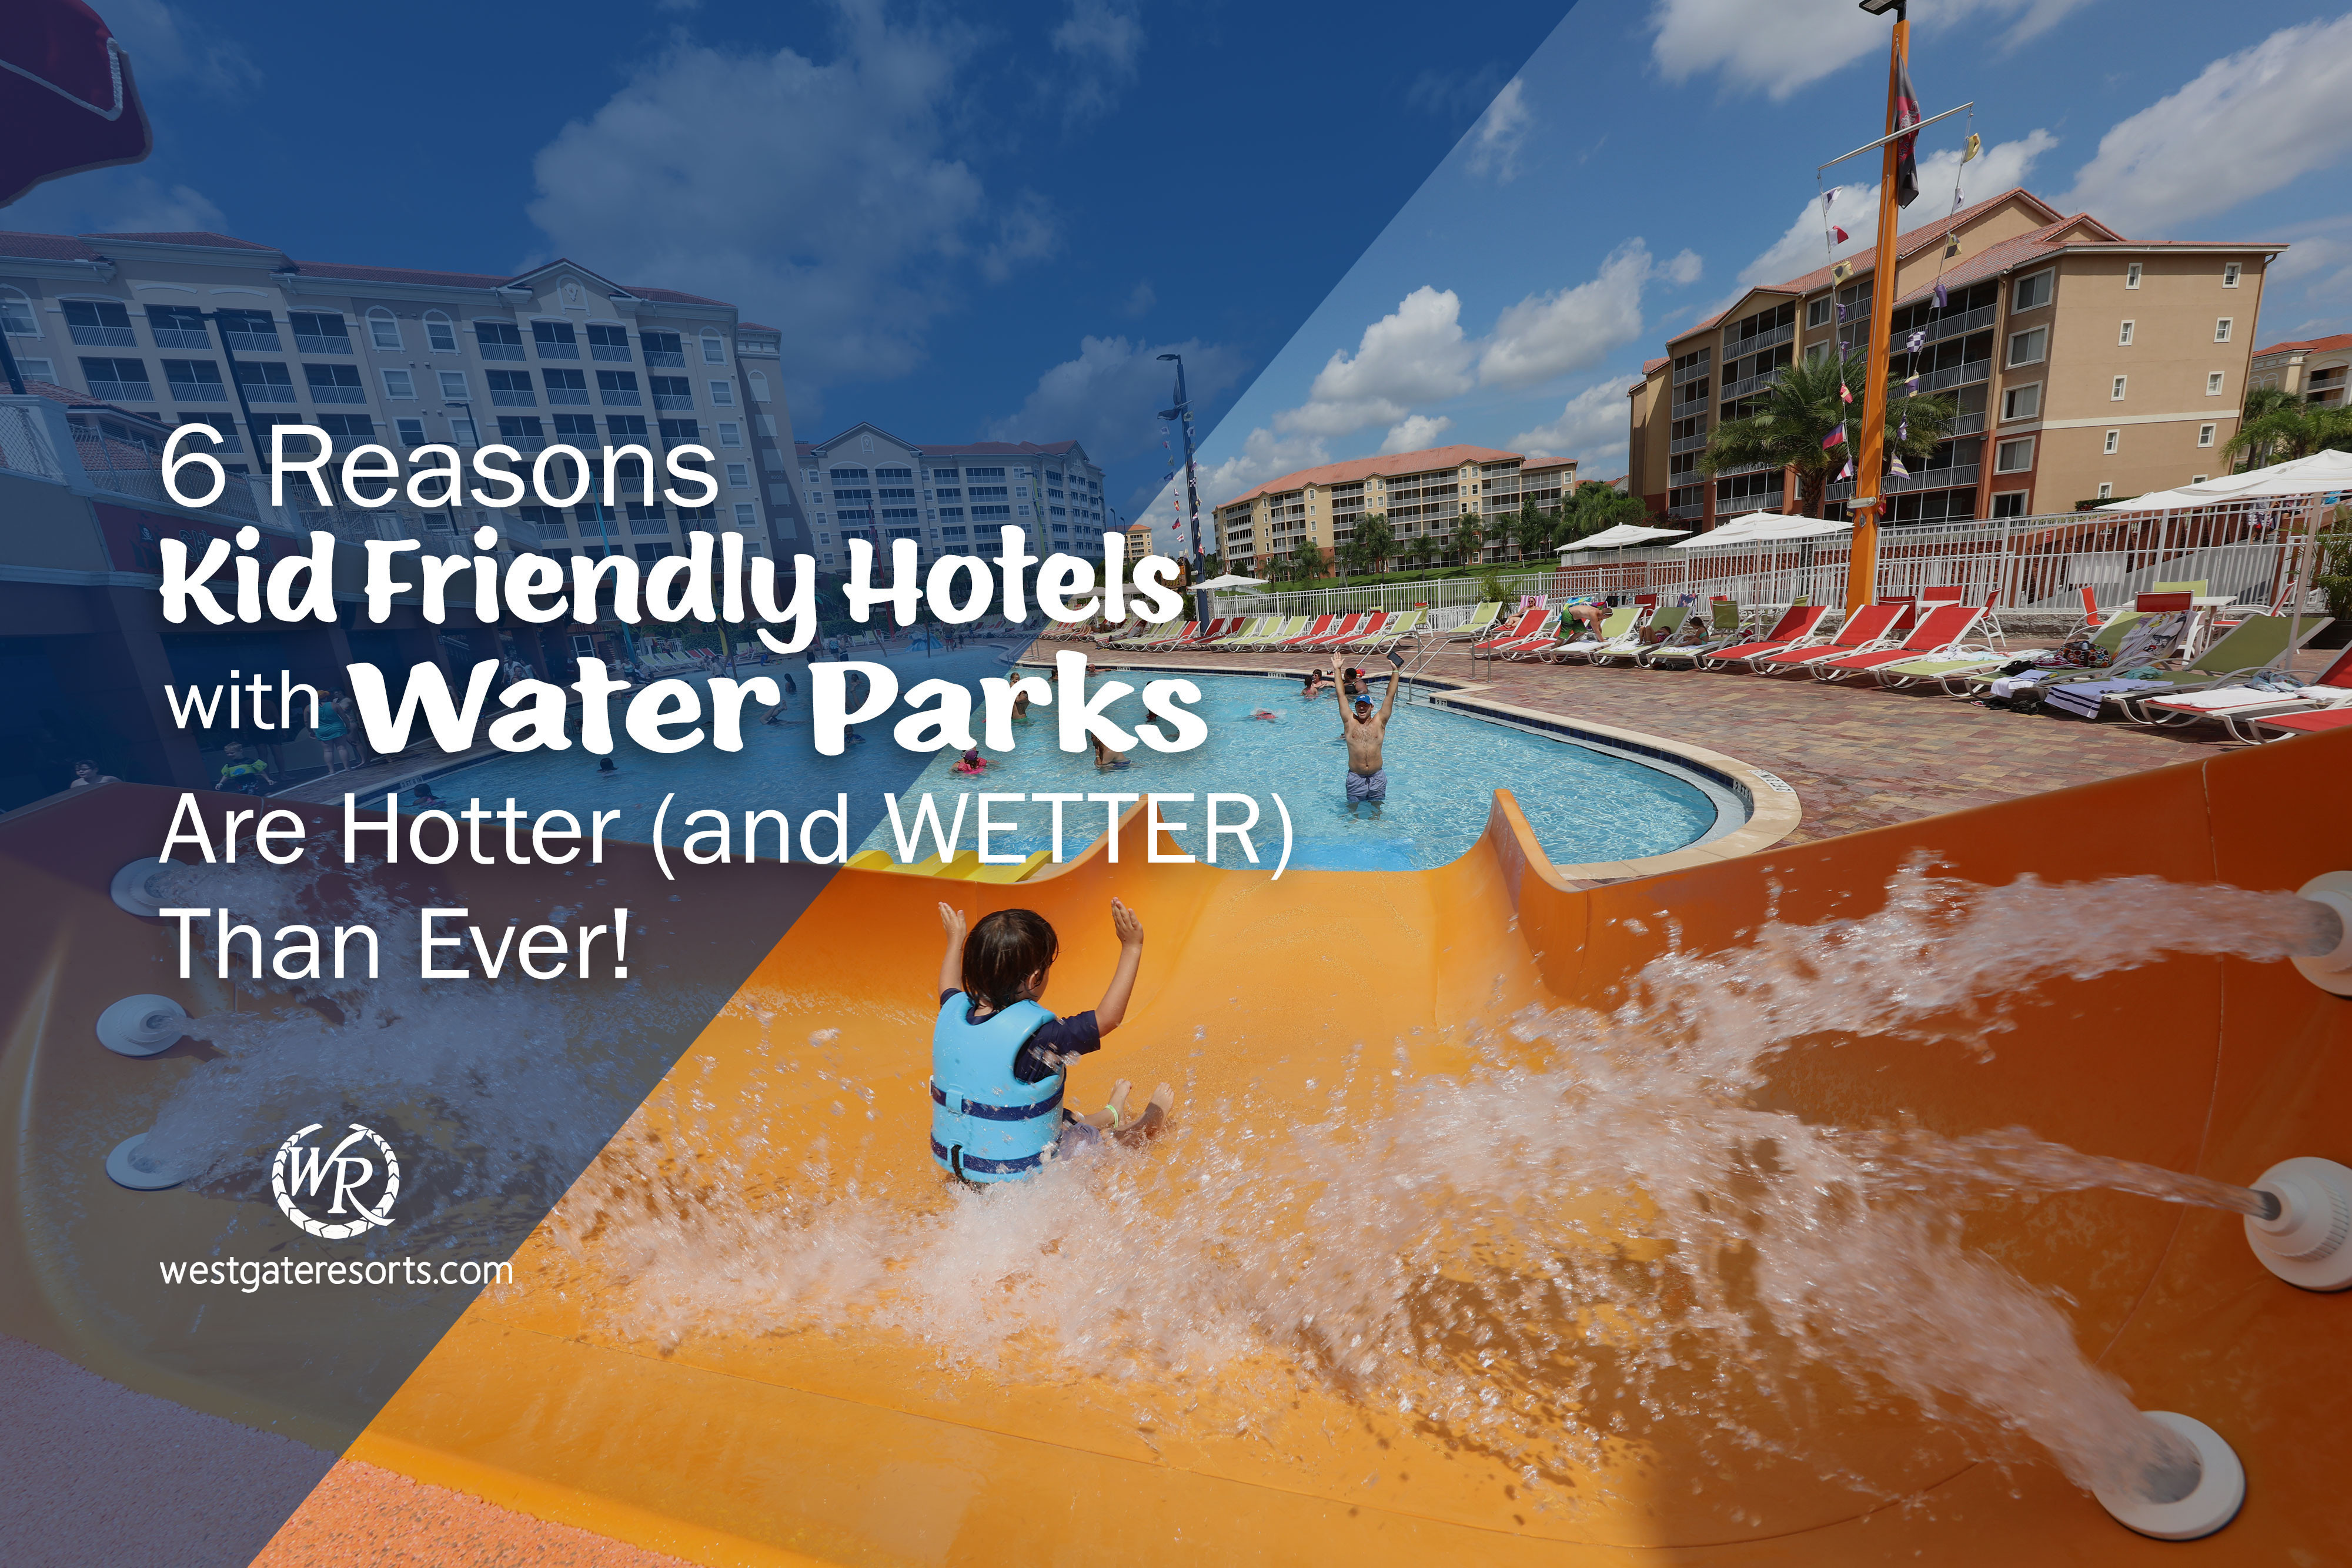 6 Reasons Kid Friendly Hotels with Water Parks Are Hotter (and WETTER) Than Ever!